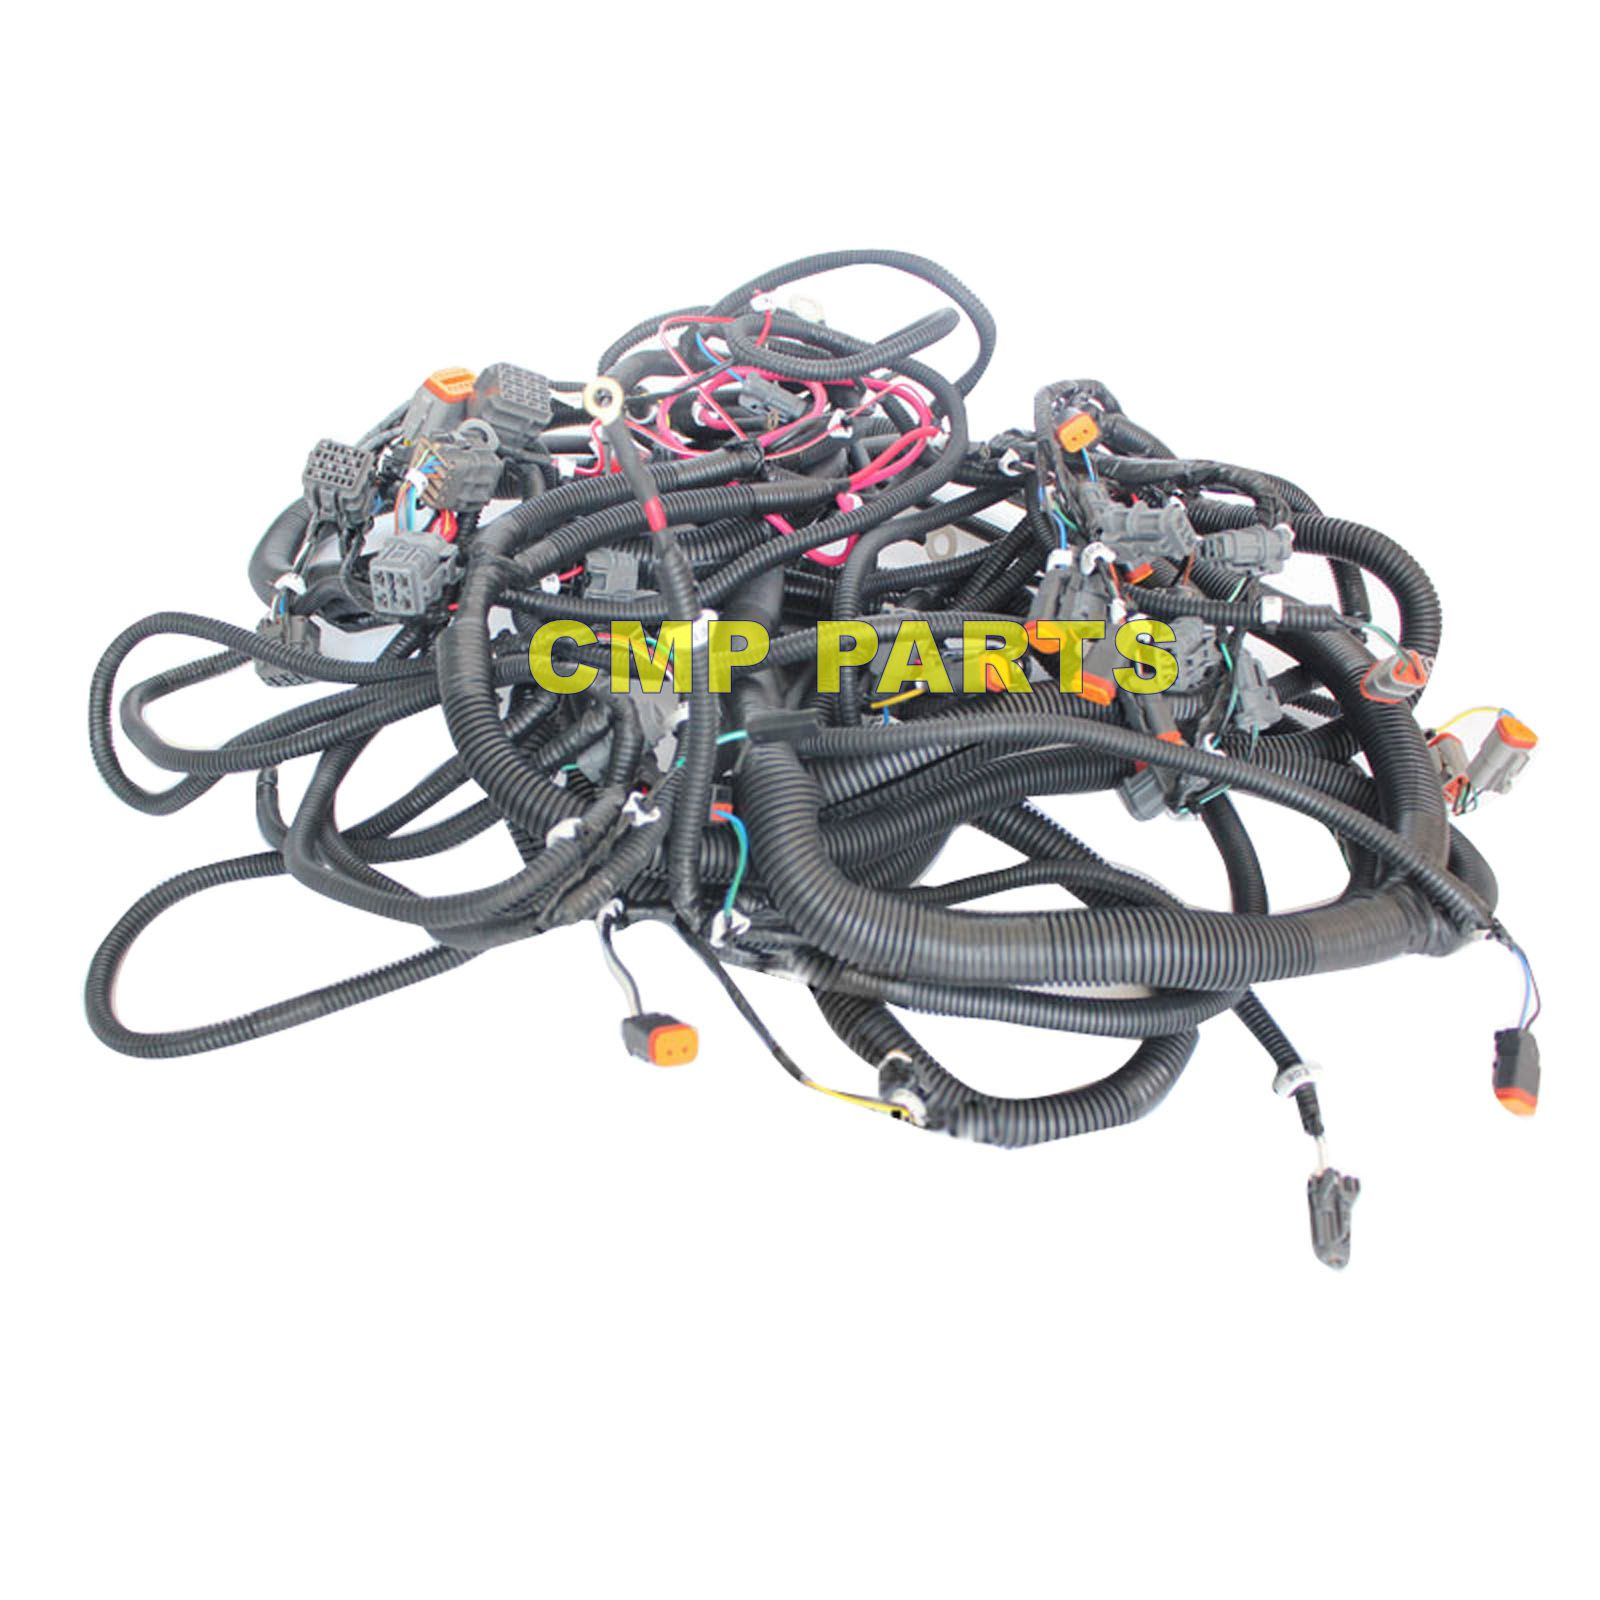 y external wiring harness old for komatsu excavator you also like